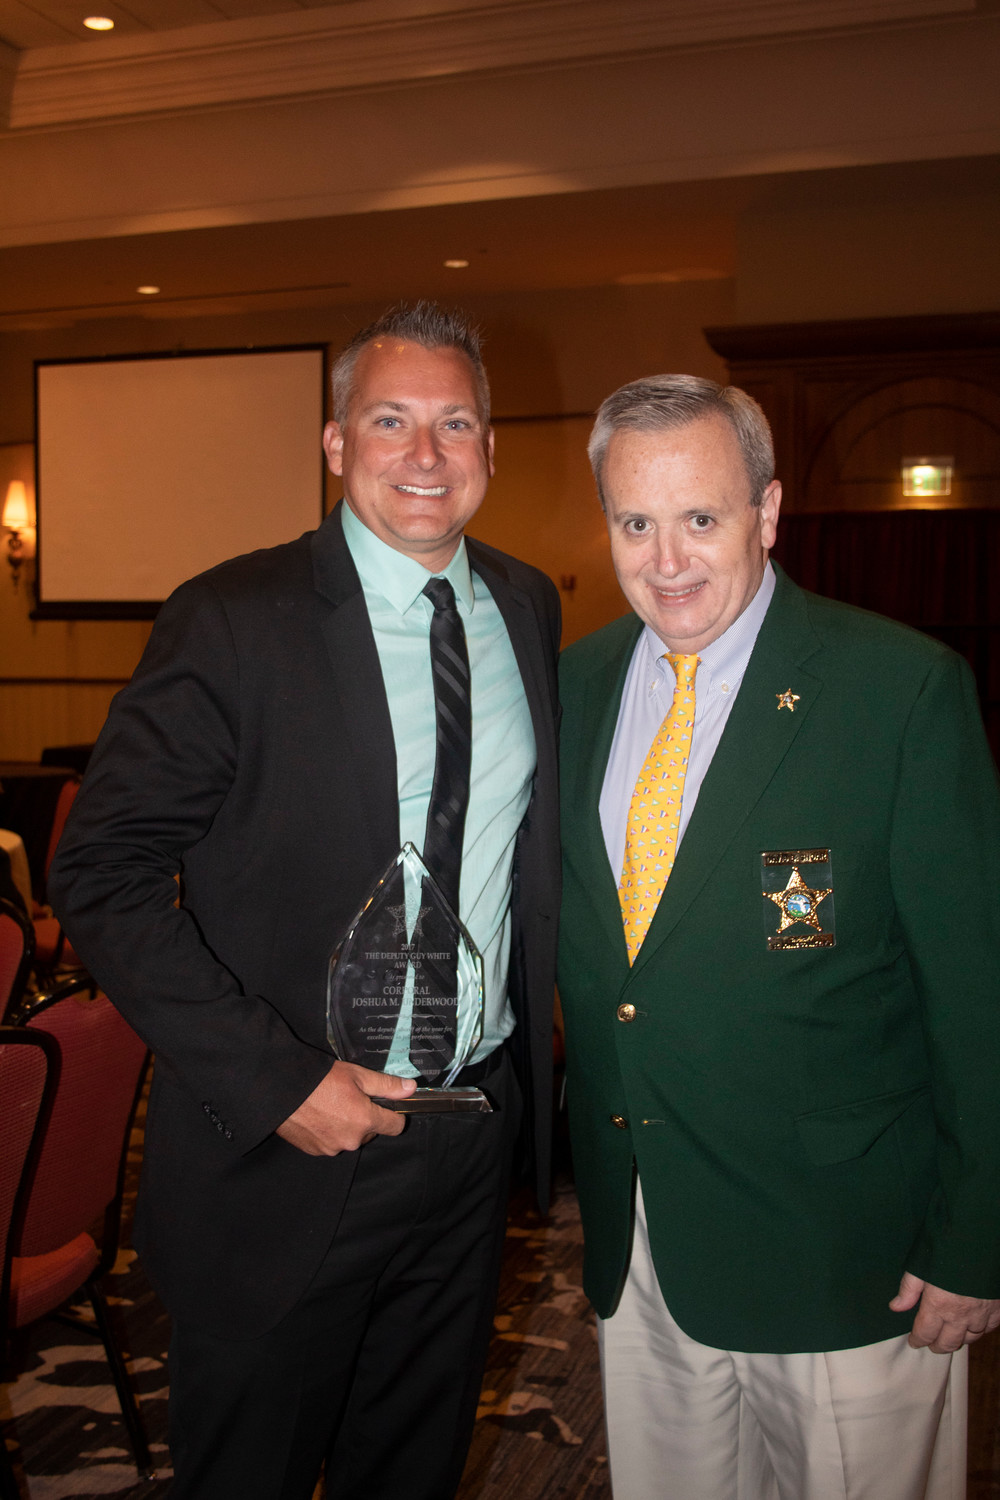 SJSO recognizes team members at annual Awards Banquet | The